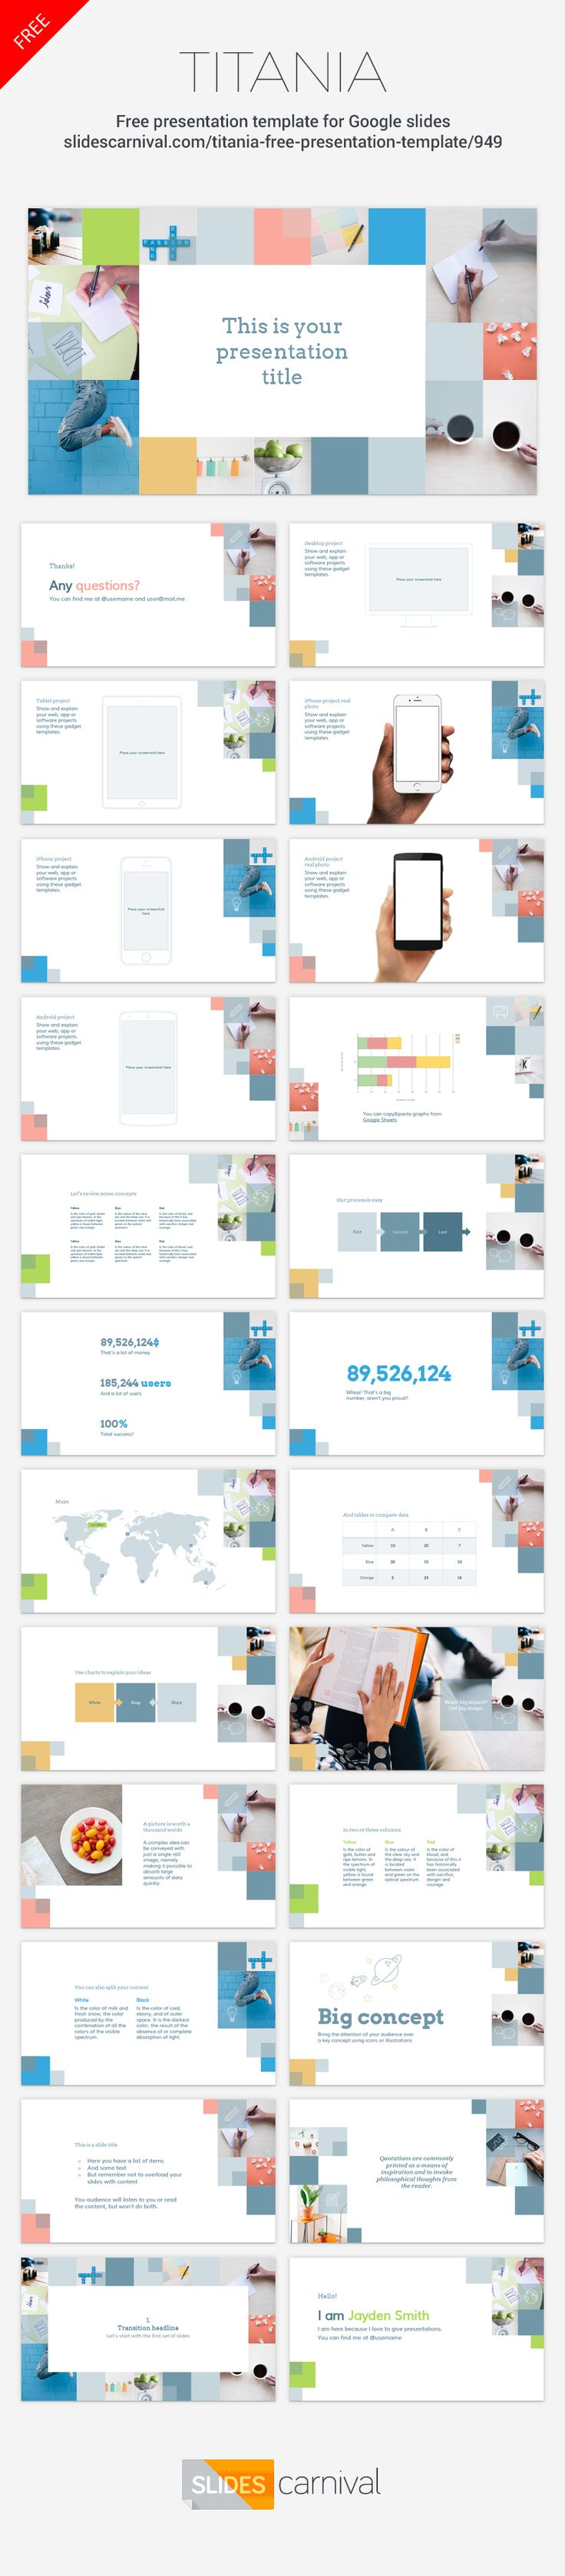 paper presentations topics prepare a presentation society of  best ideas about presentation topics interesting positive colorful and professional this presentation template suits a great